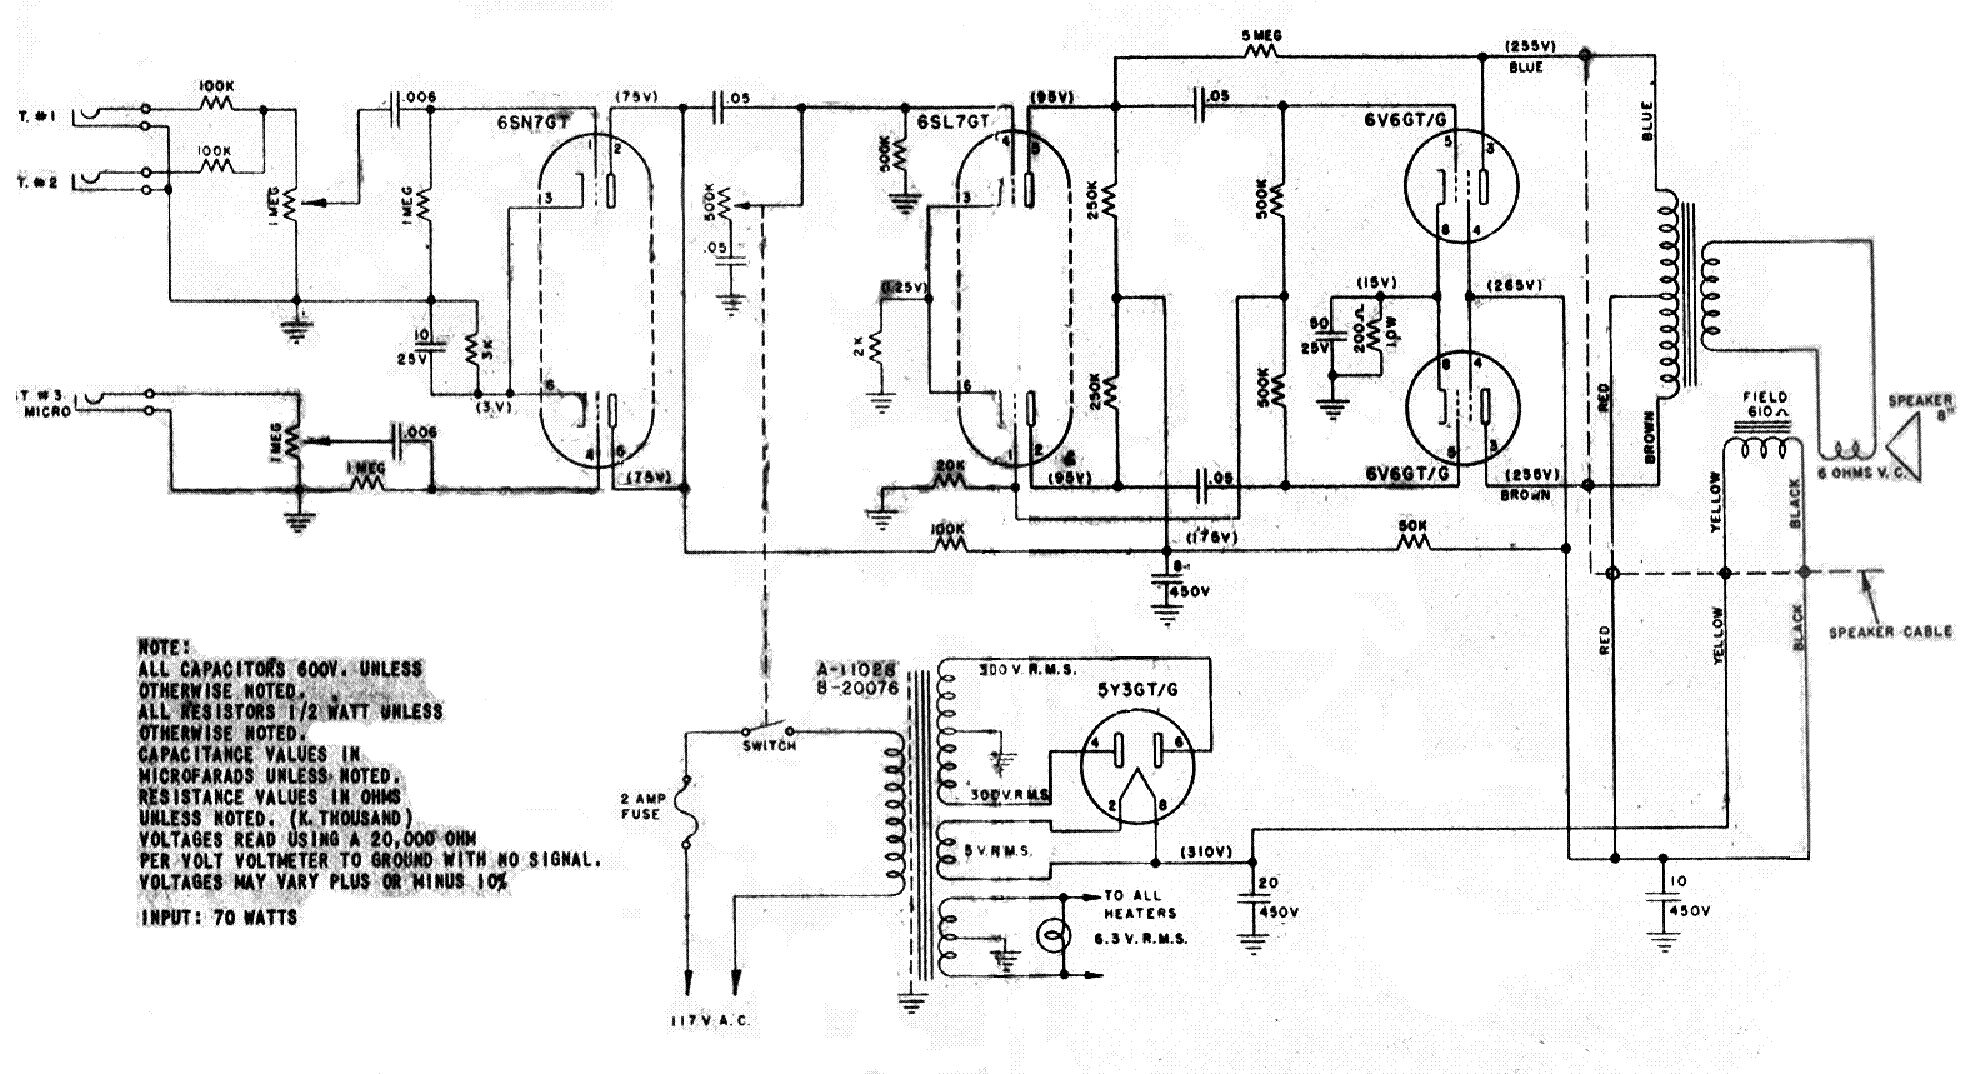 Harmony Amp Schematic - General Wiring Diagrams on